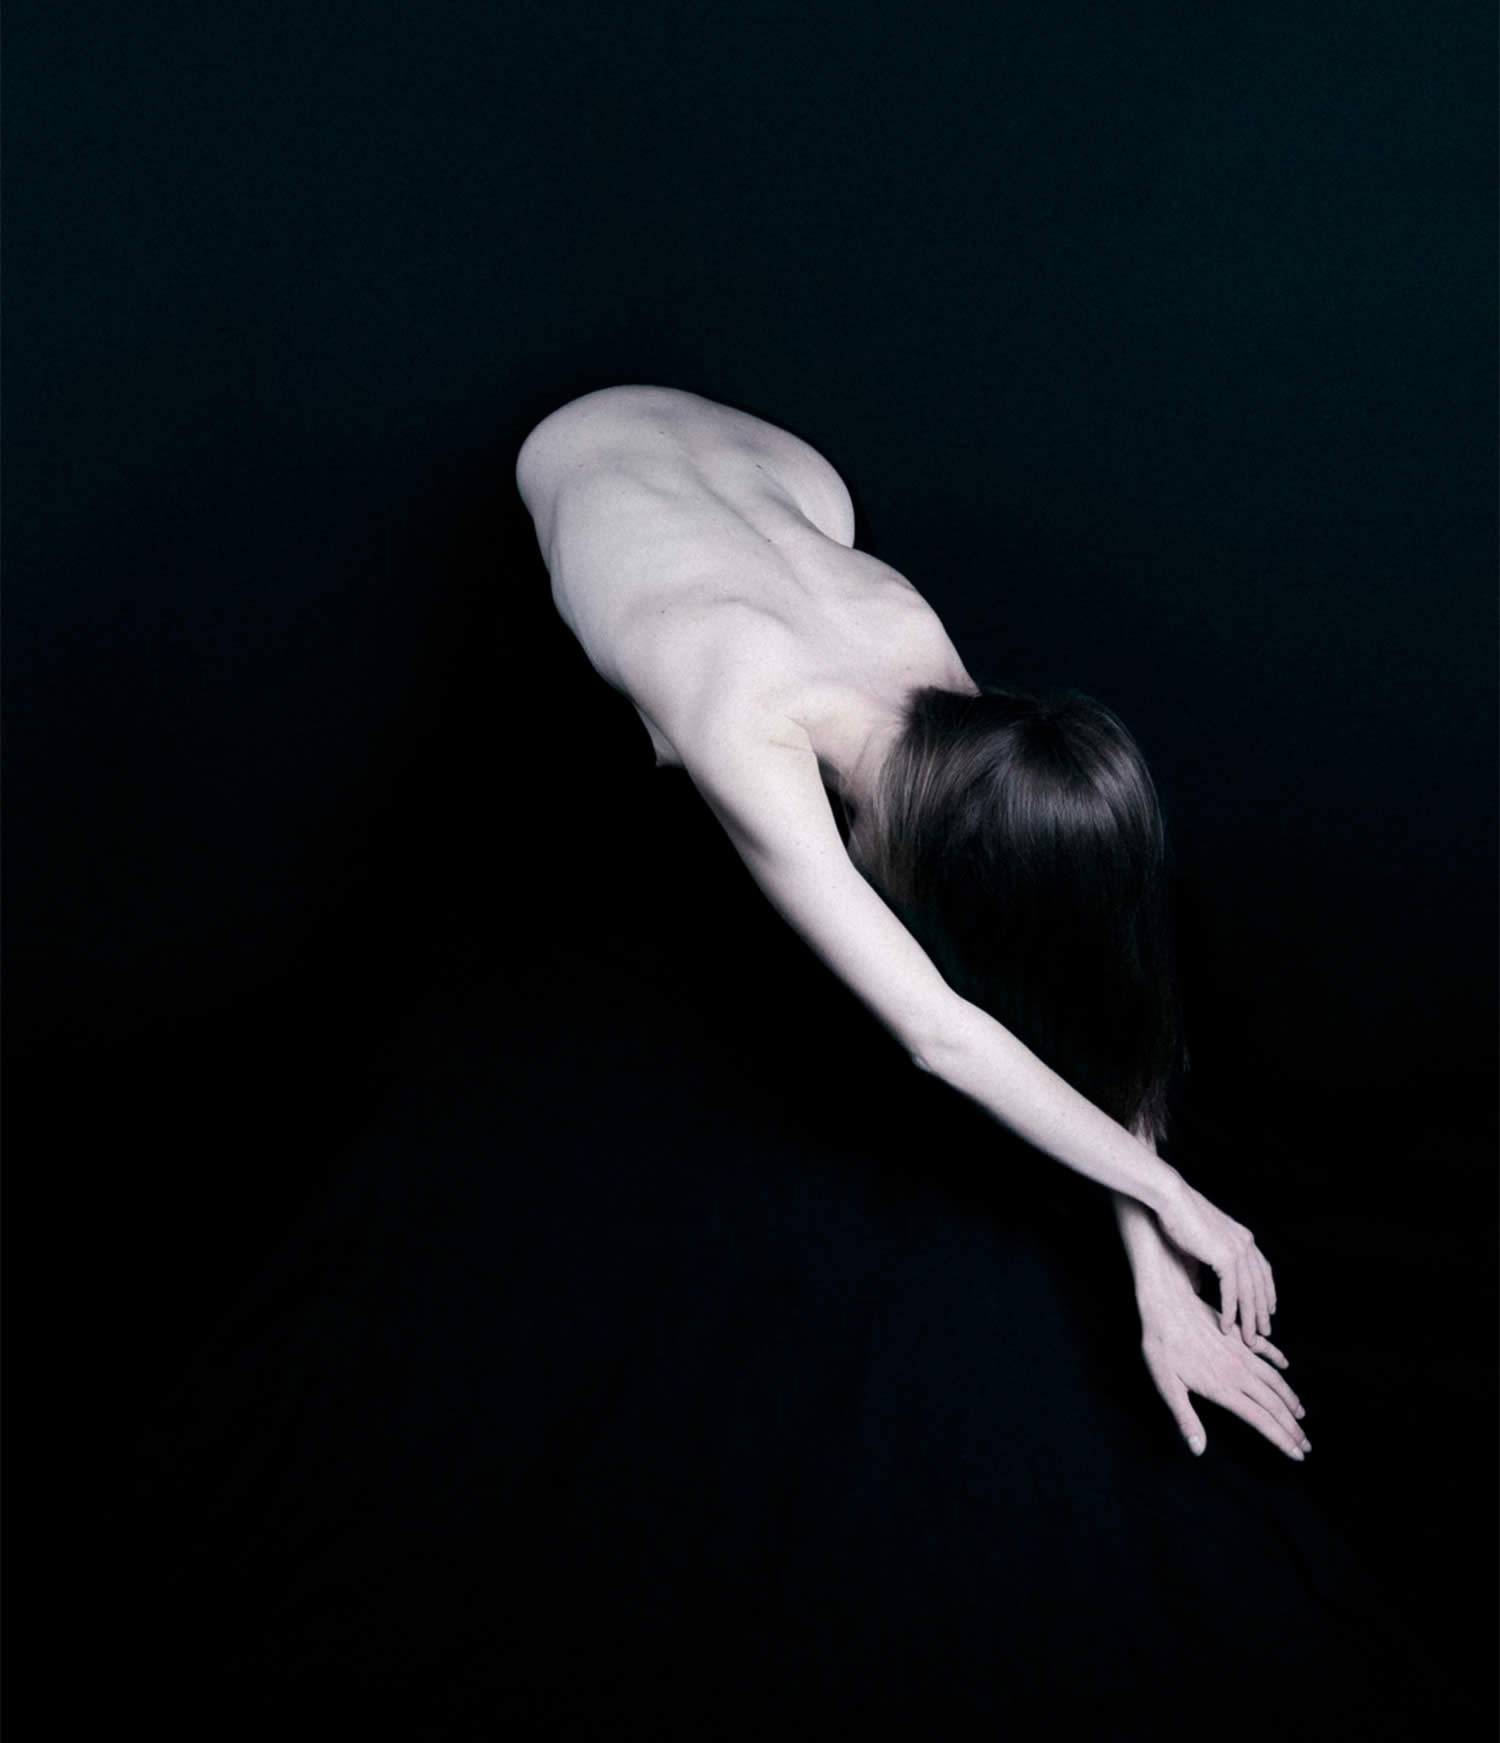 black background, woman stretching, thibault-delhom